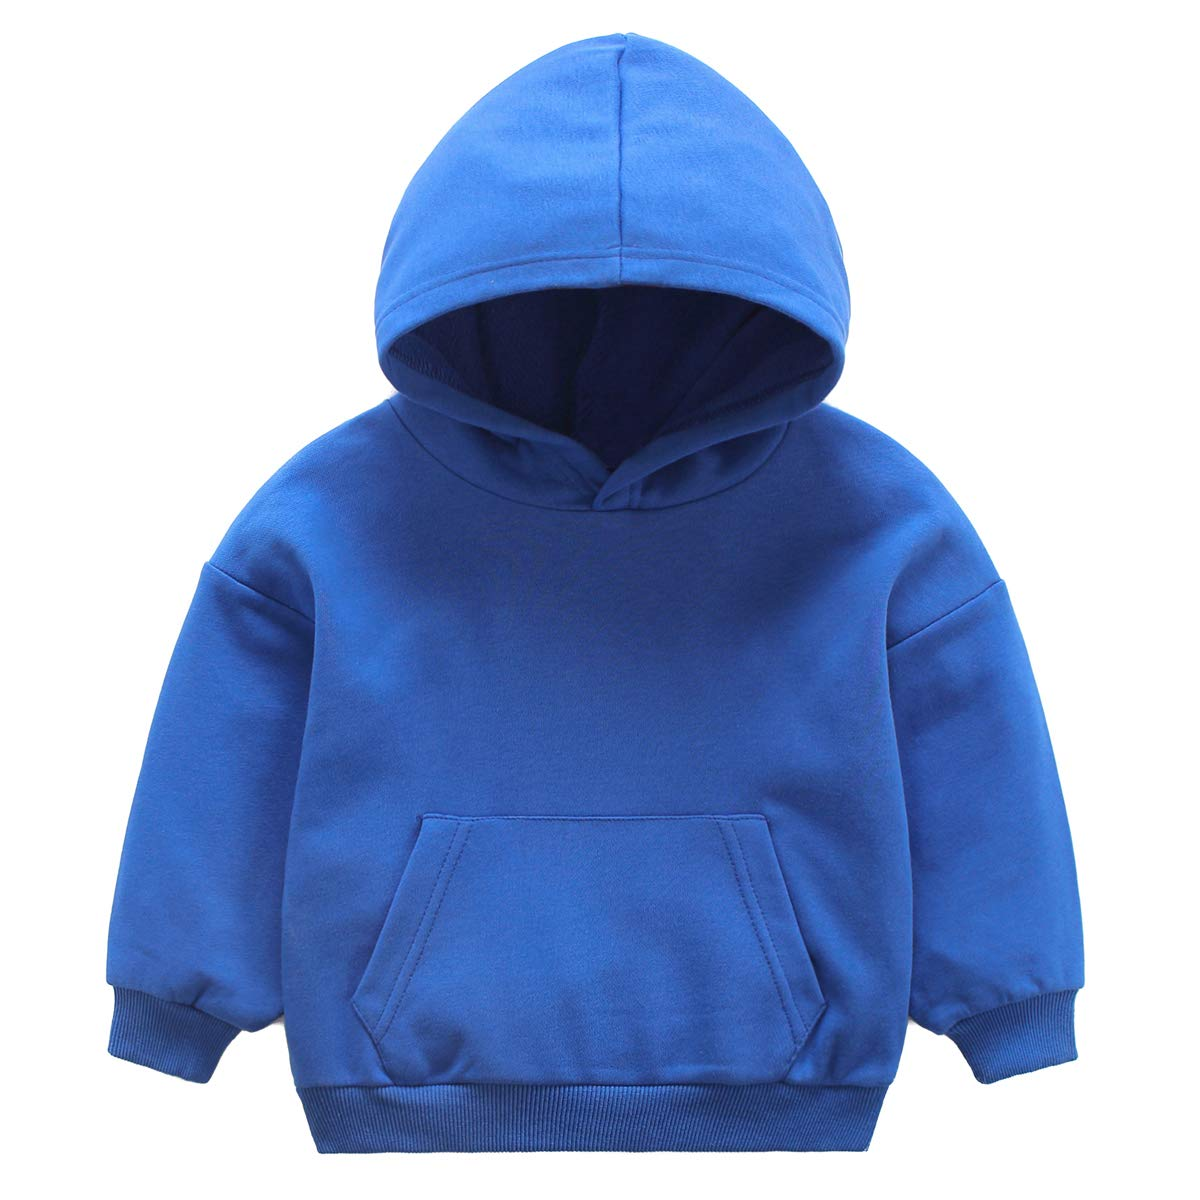 NANVII Baby Girl Boy Hoddie,Baby Pullover Cotton Hoodie with Pocket,Solid Hoodie for Infant